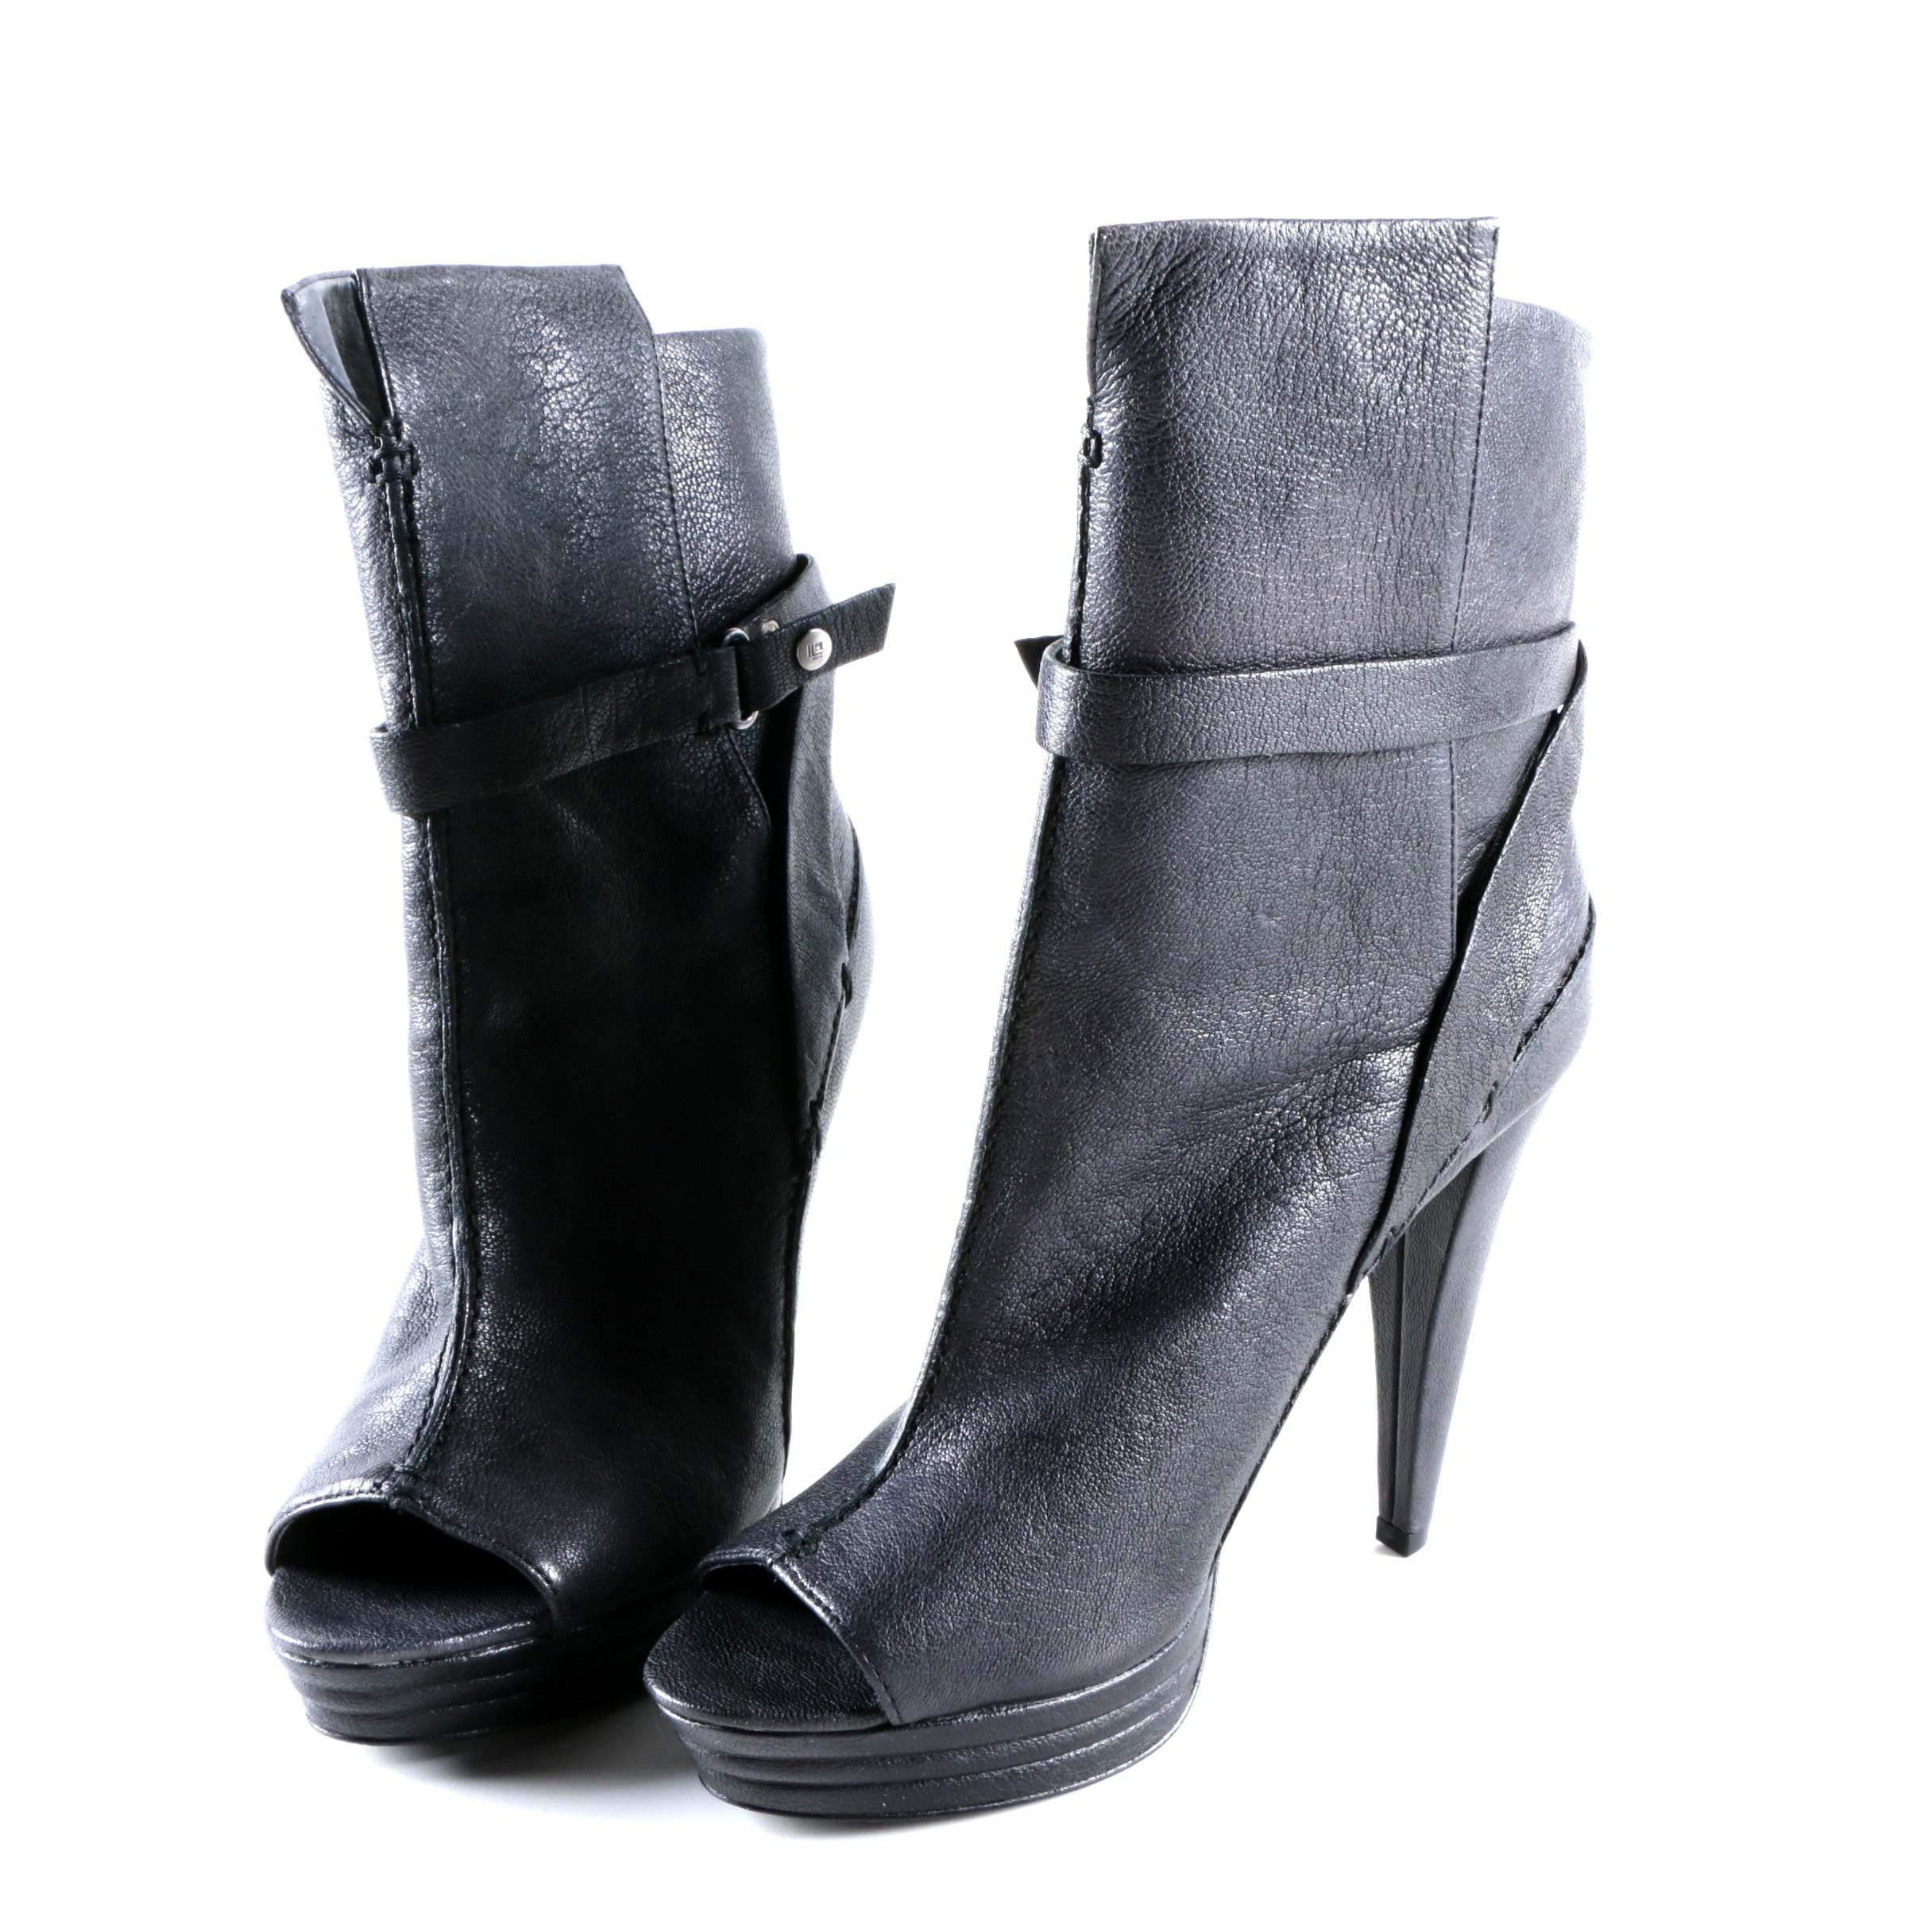 7 For All Mankind Raven Booties